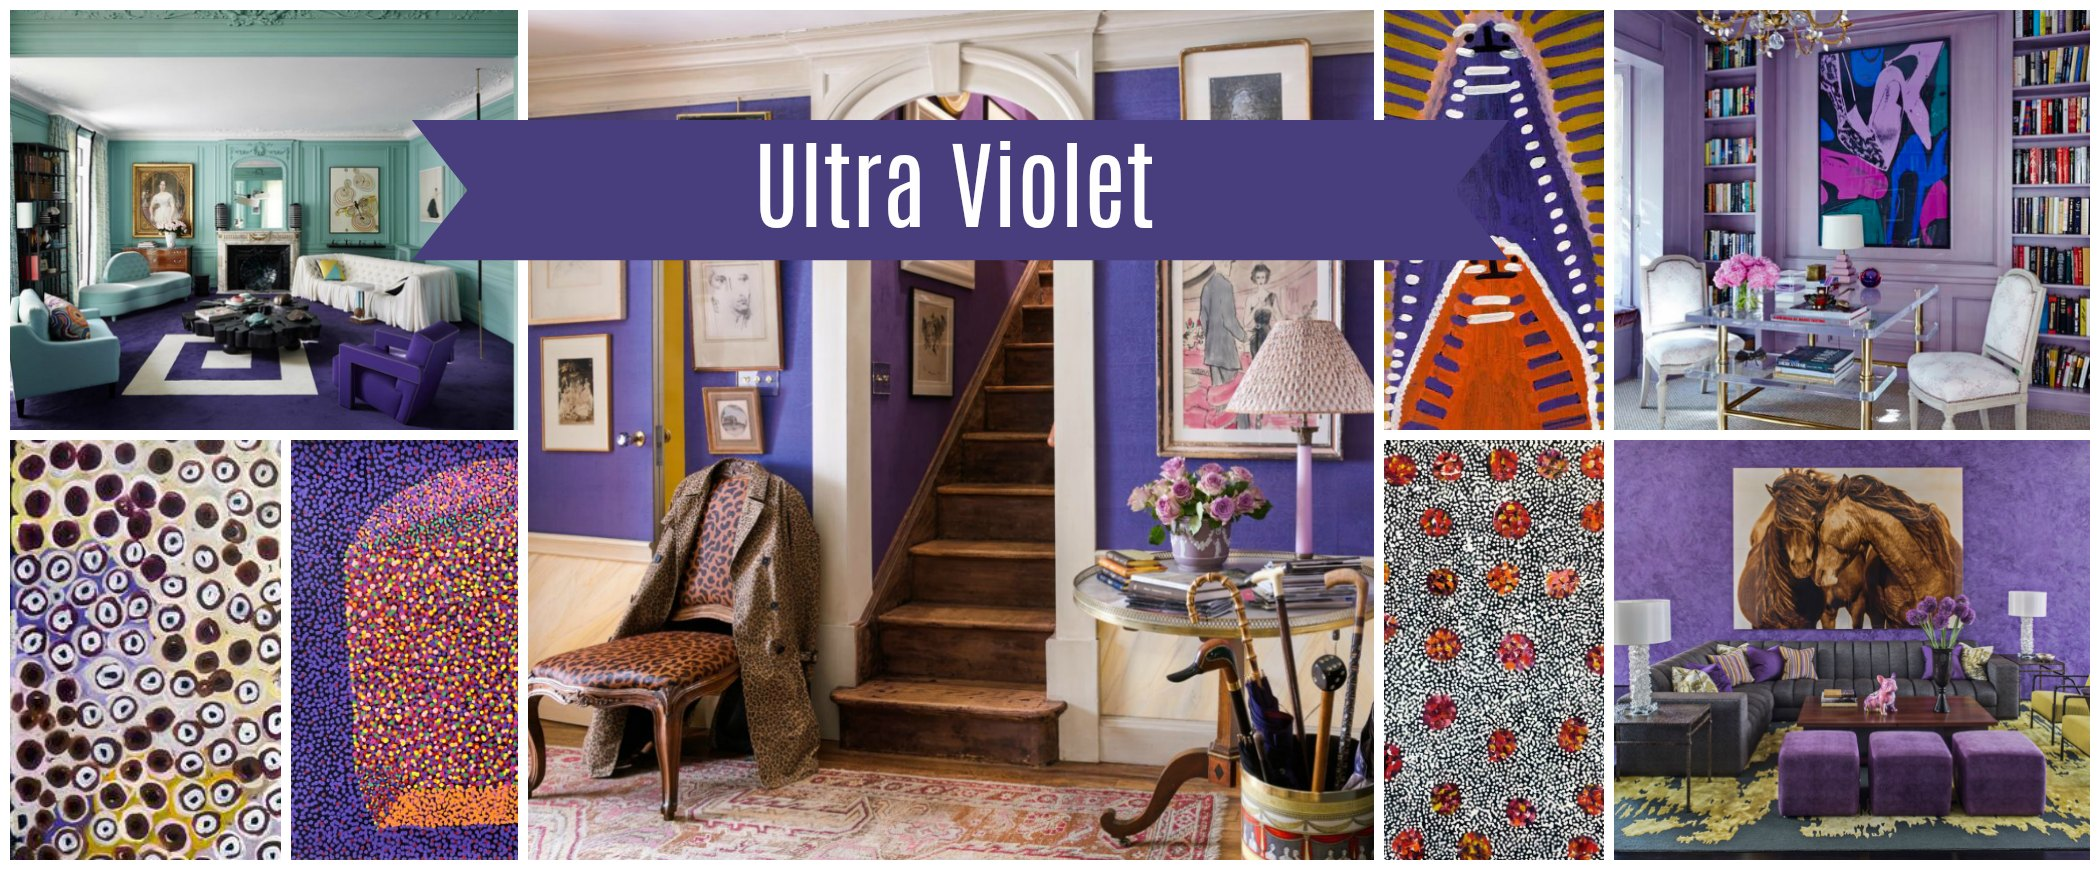 Ultra Violet Paintings and Artwork